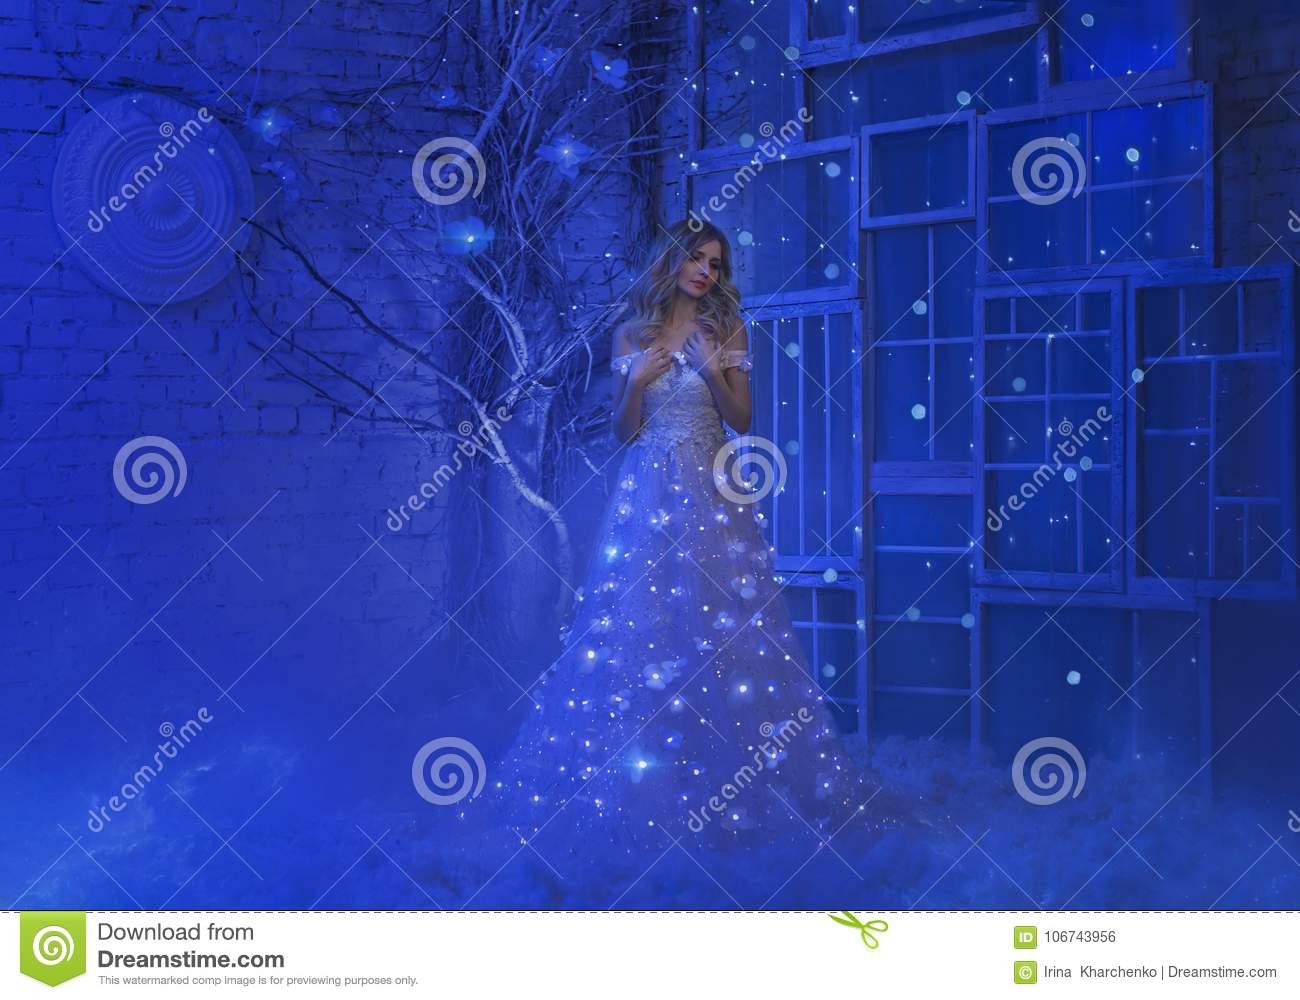 The girl woke up on Christmas night and in her room a miracle turned, magic turned her into a fairy princess.